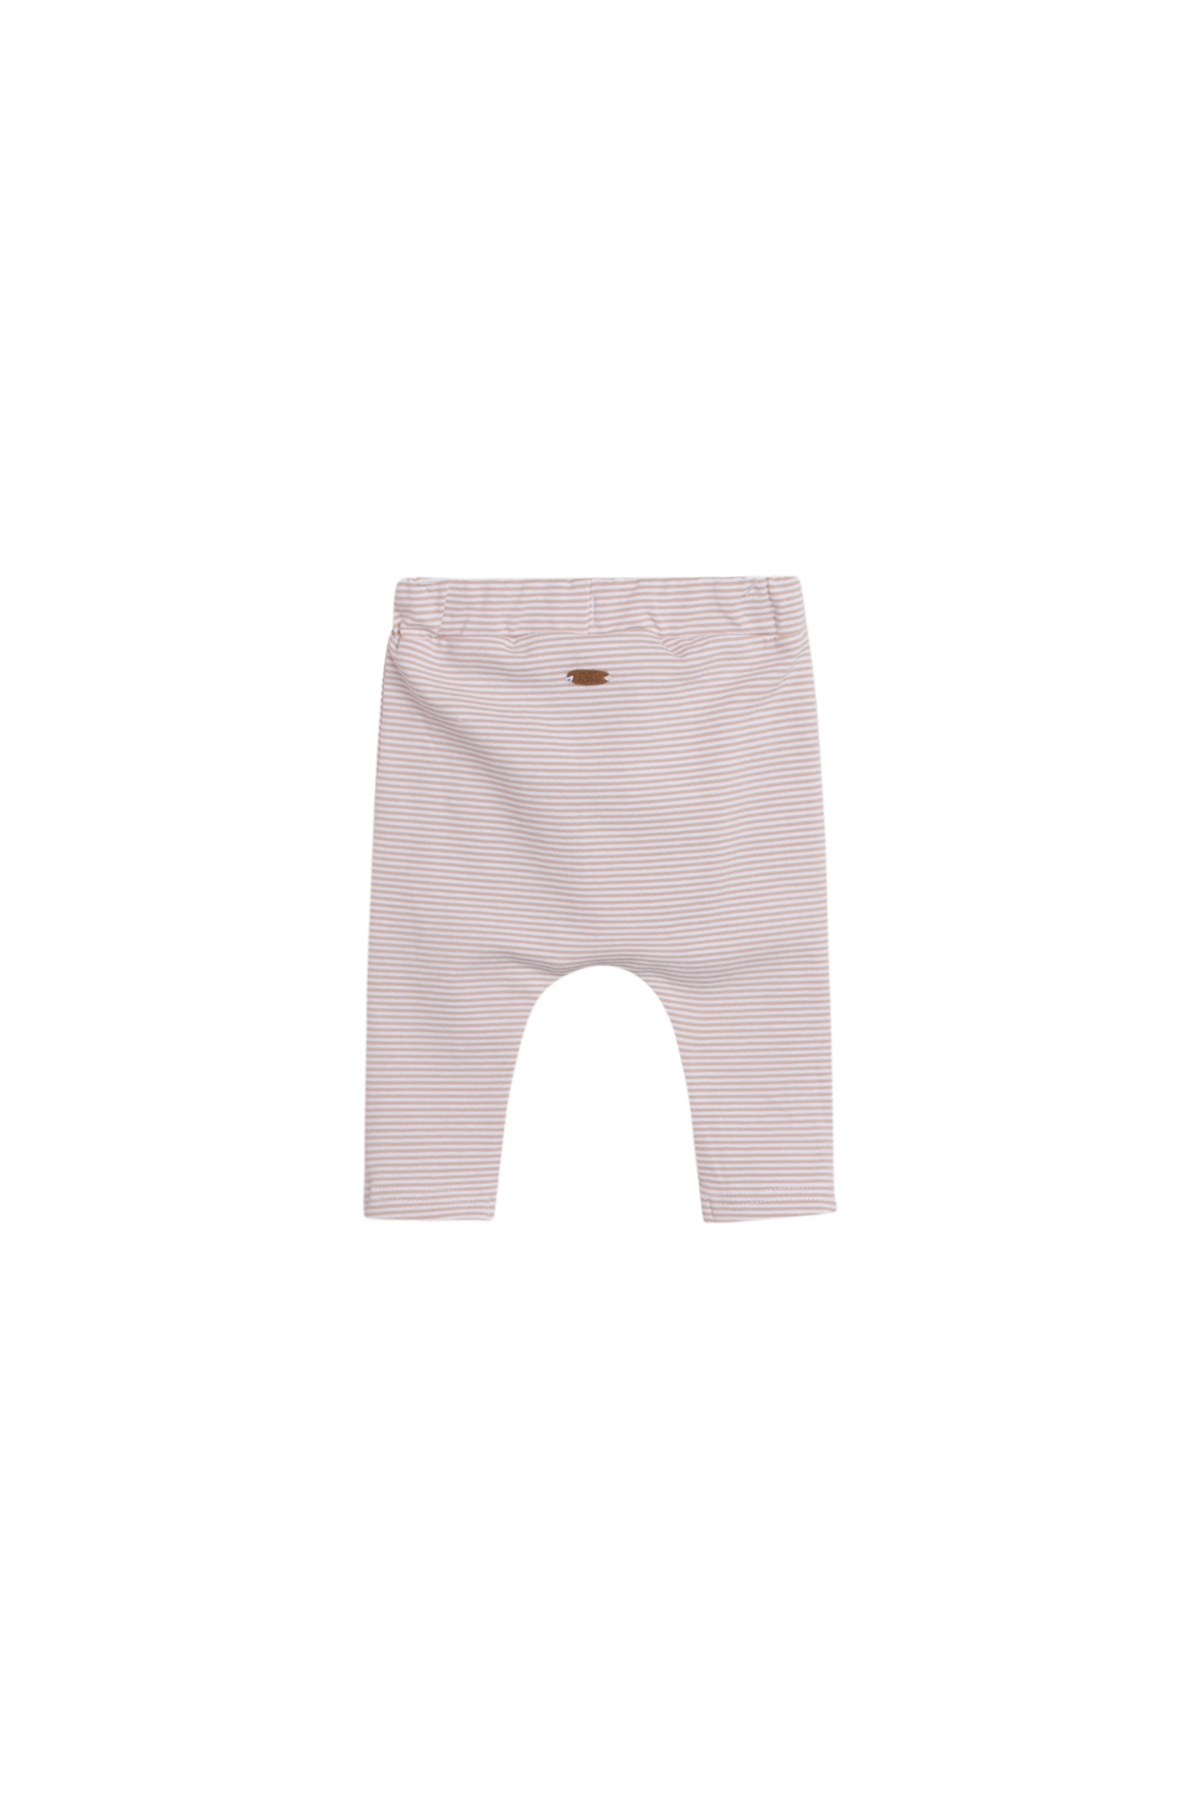 Hust and Claire Gill joggingbukser, Desert red, 62